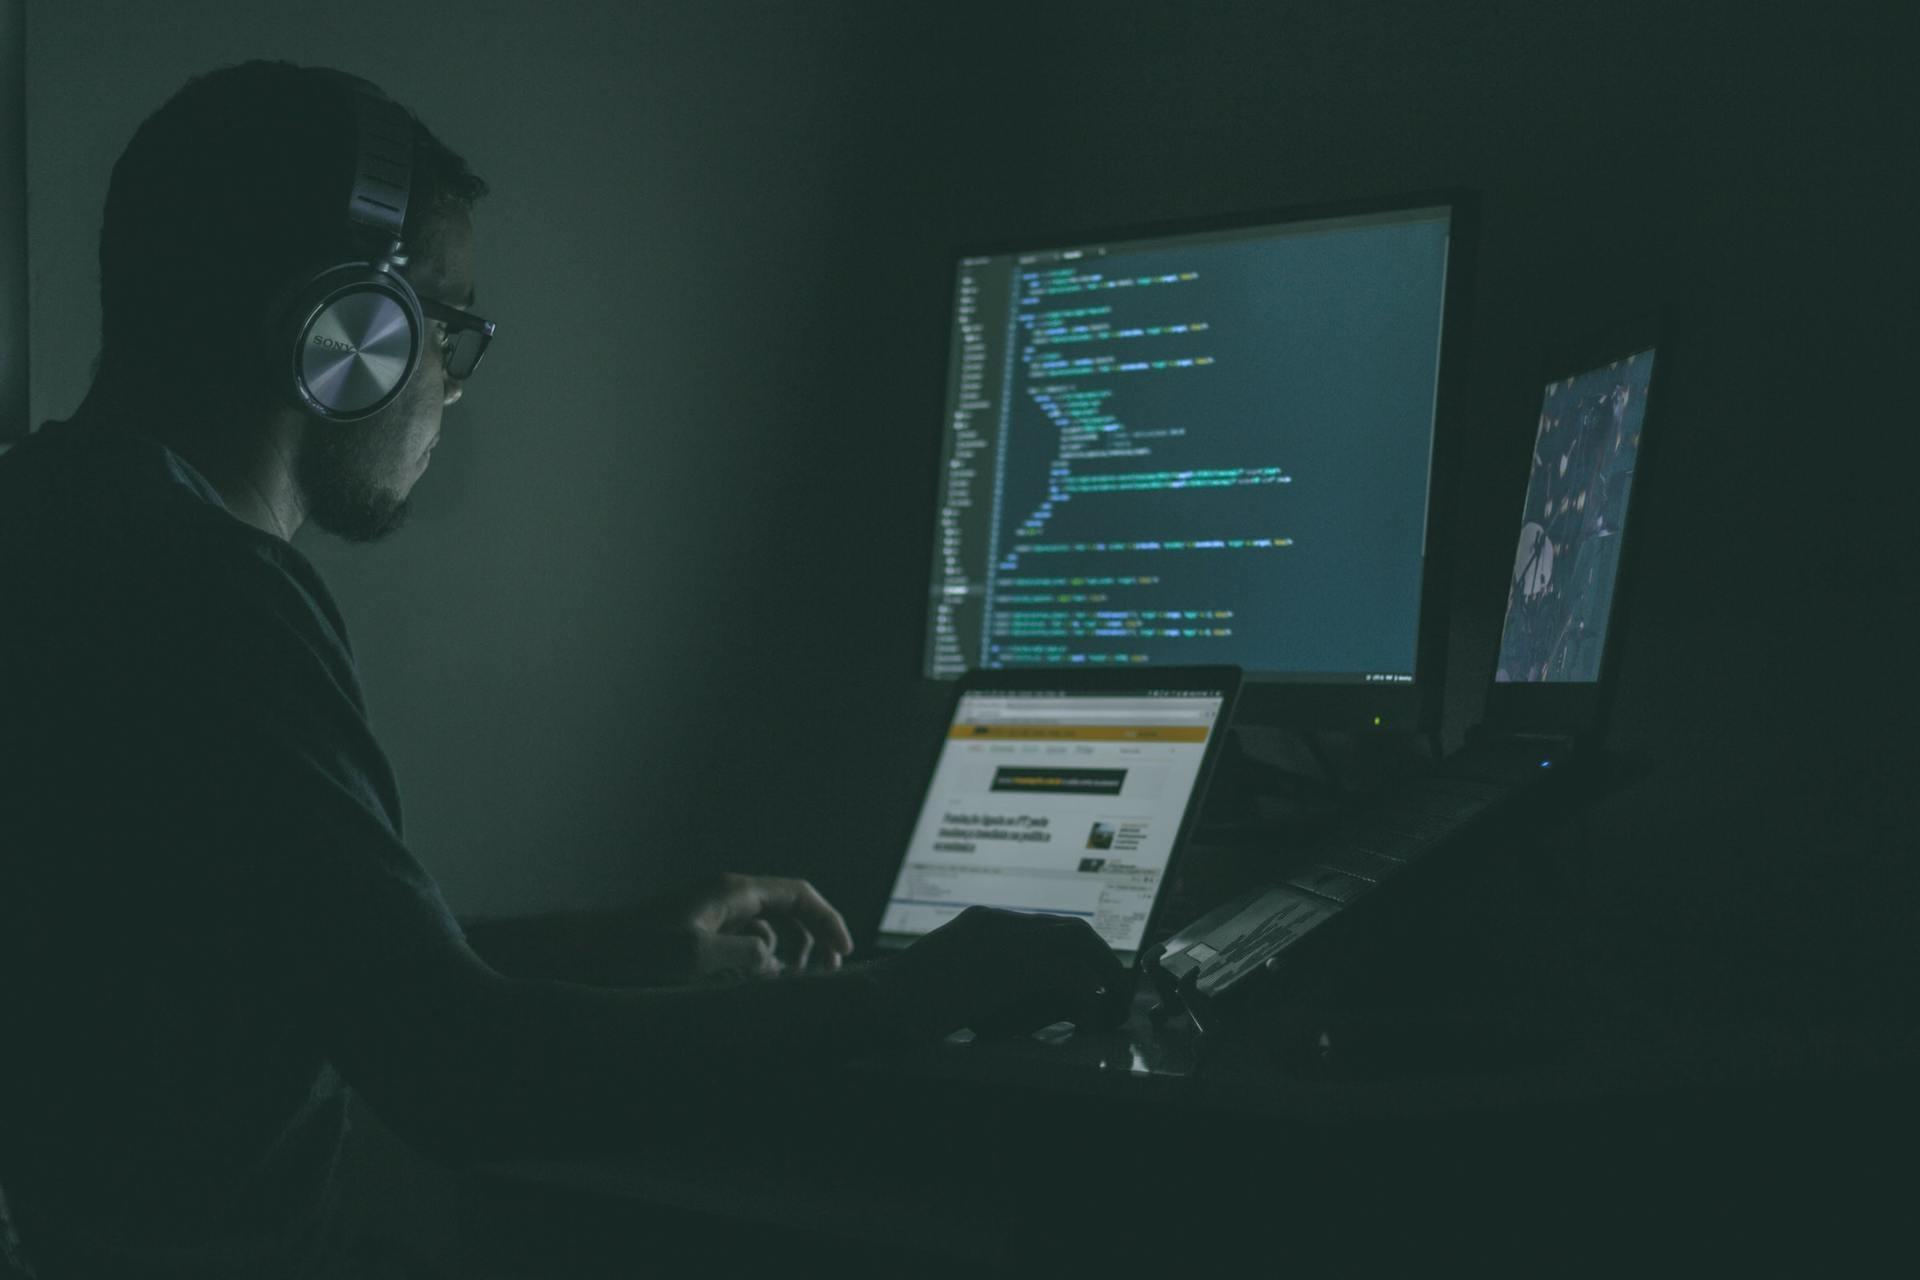 How To Become a Penetration Tester thumbnail image